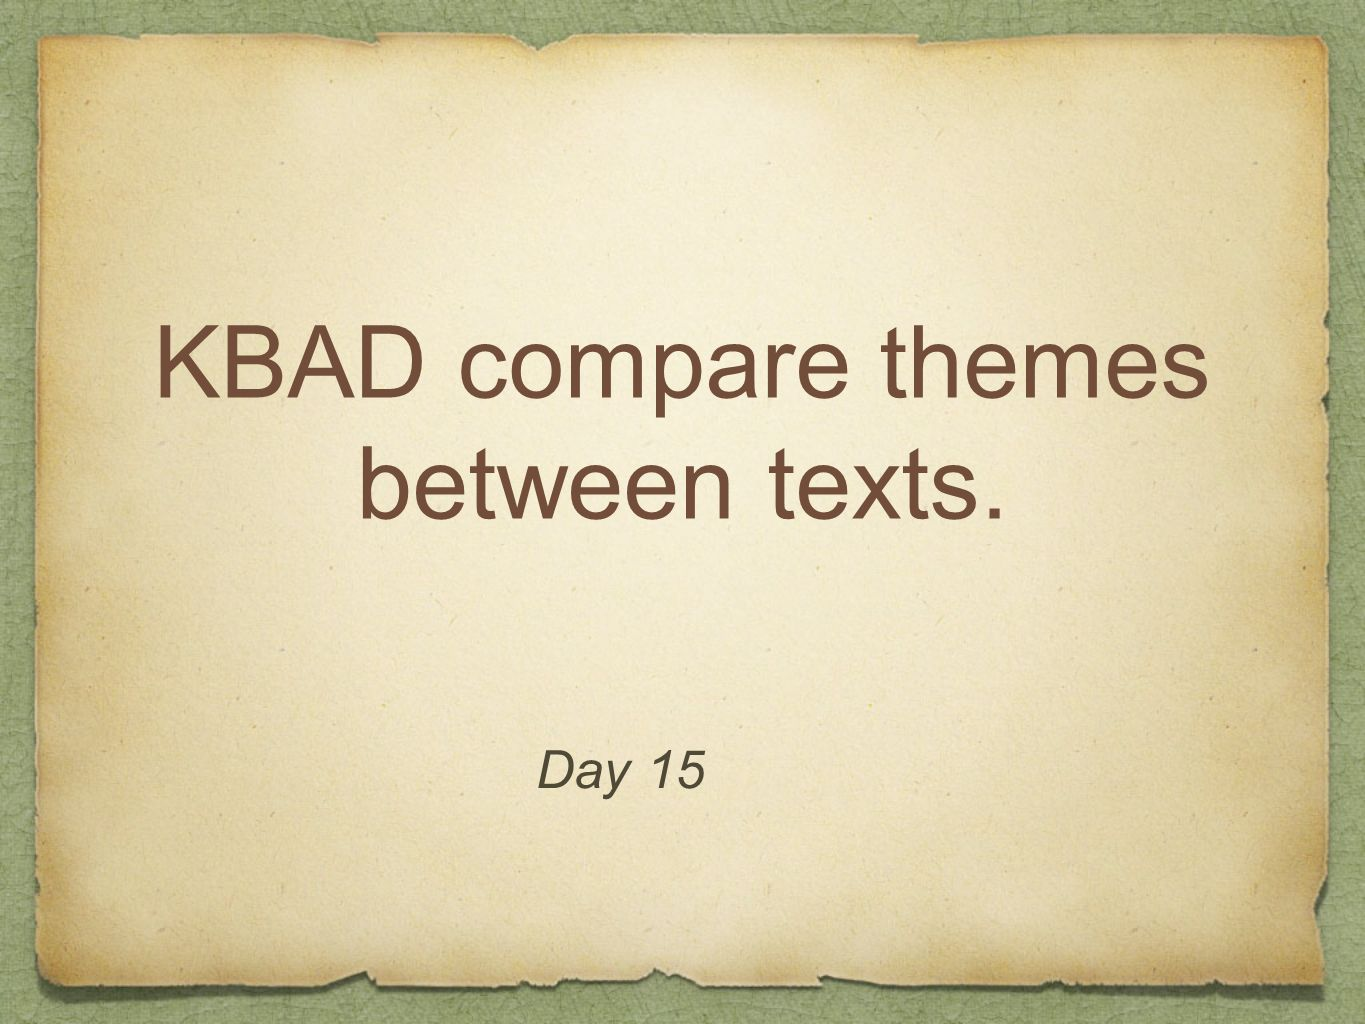 KBAD compare themes between texts.